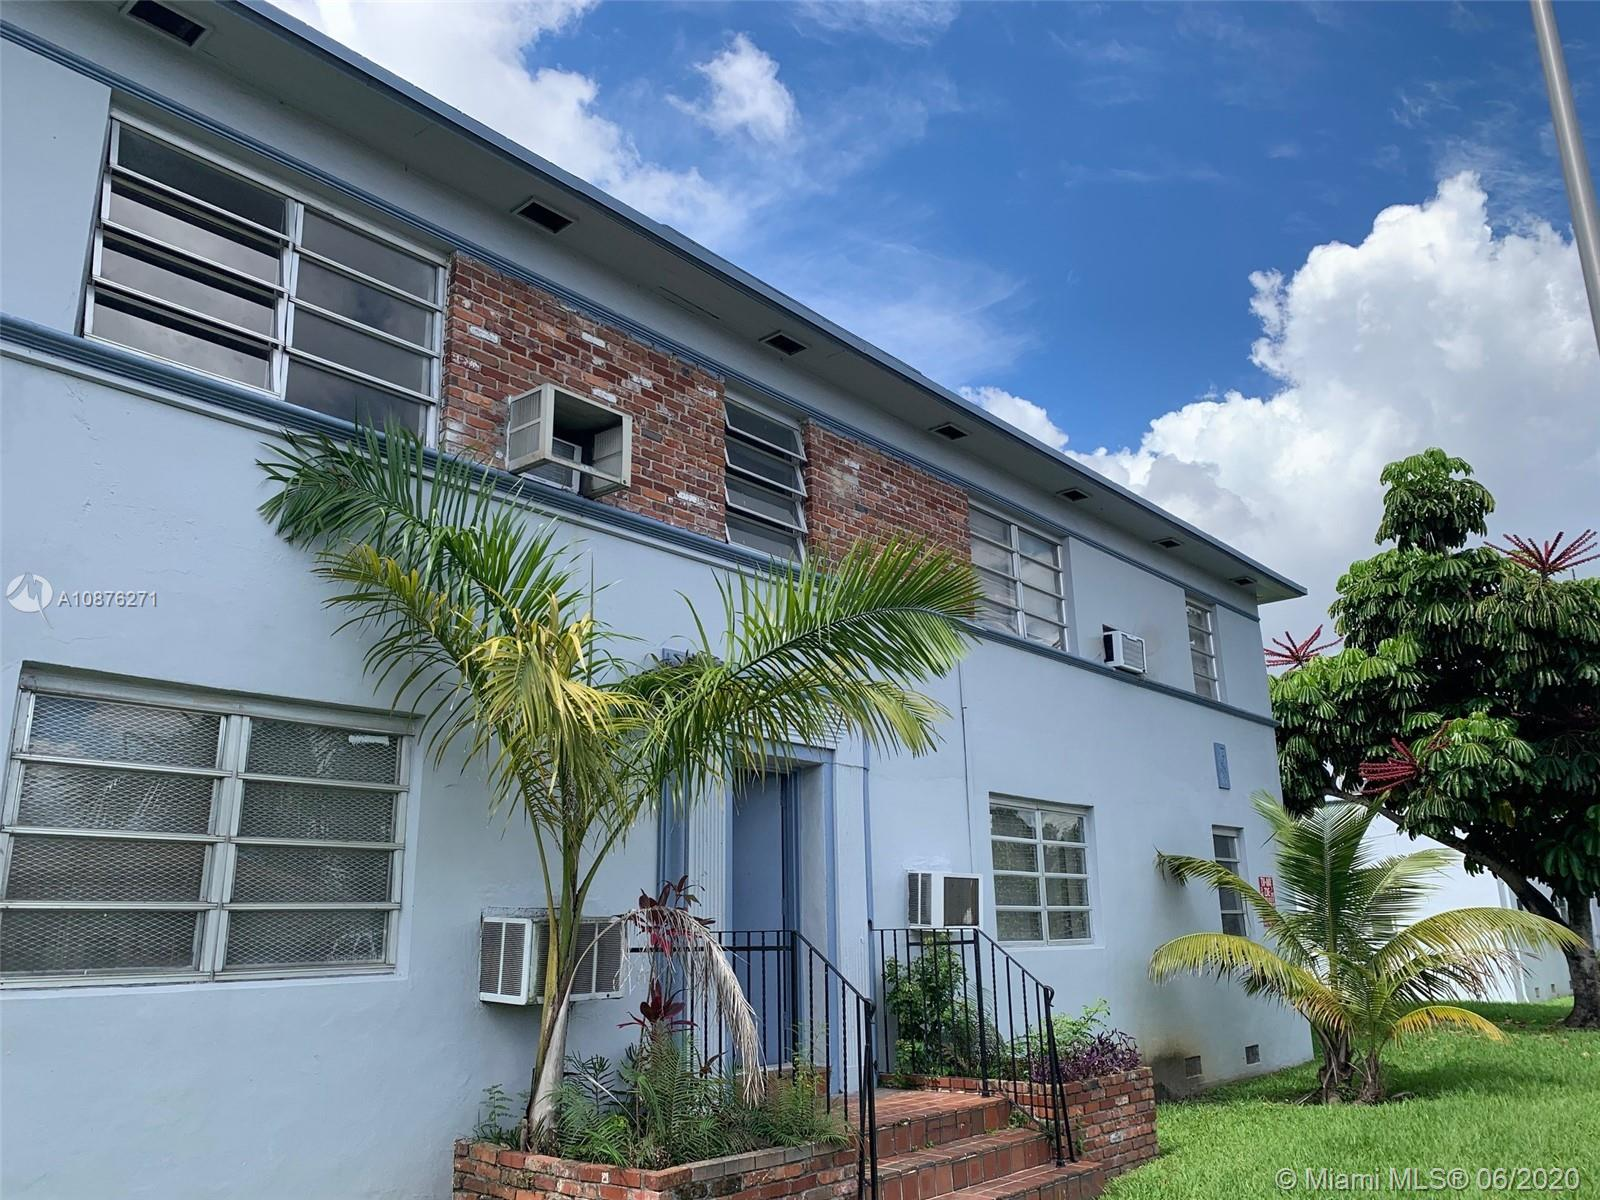 428 NE 82nd St # 2E, Miami, Florida 33138, 2 Bedrooms Bedrooms, ,1 BathroomBathrooms,Residential,For Sale,428 NE 82nd St # 2E,A10876271